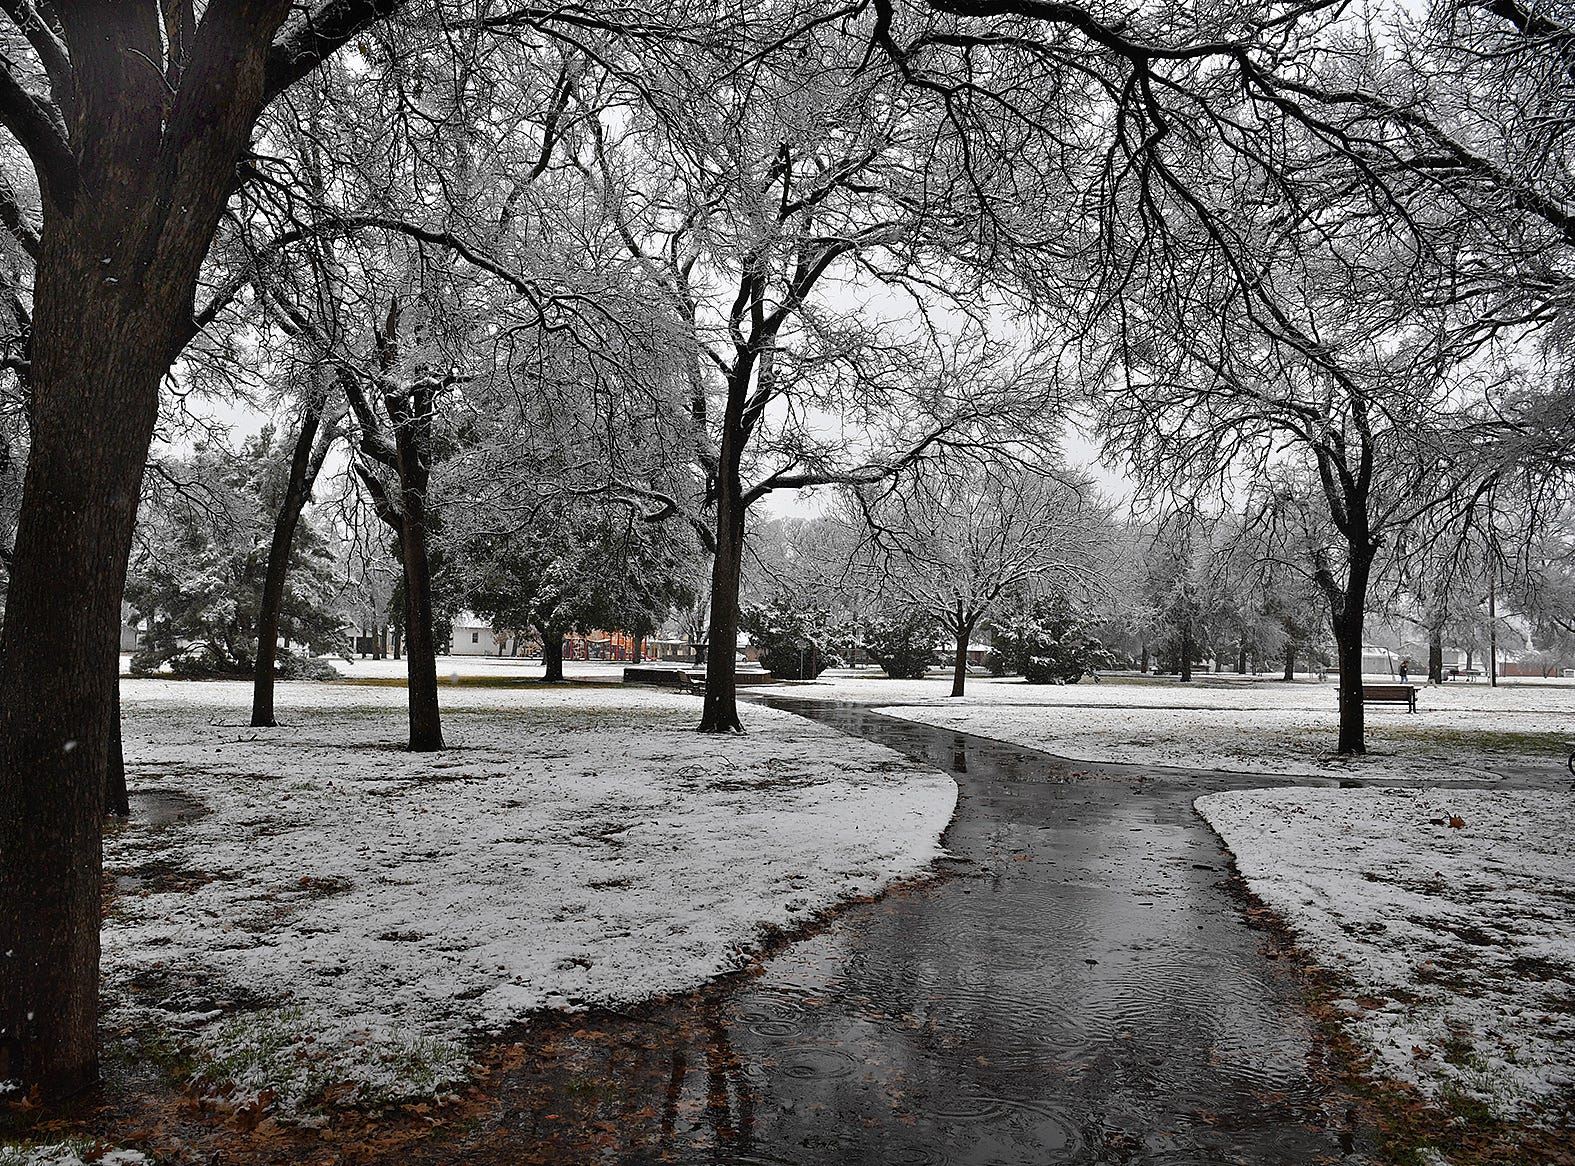 Bridwell Park took on the look of a winter wonderland Thursday afternoon as snow continued to fall.